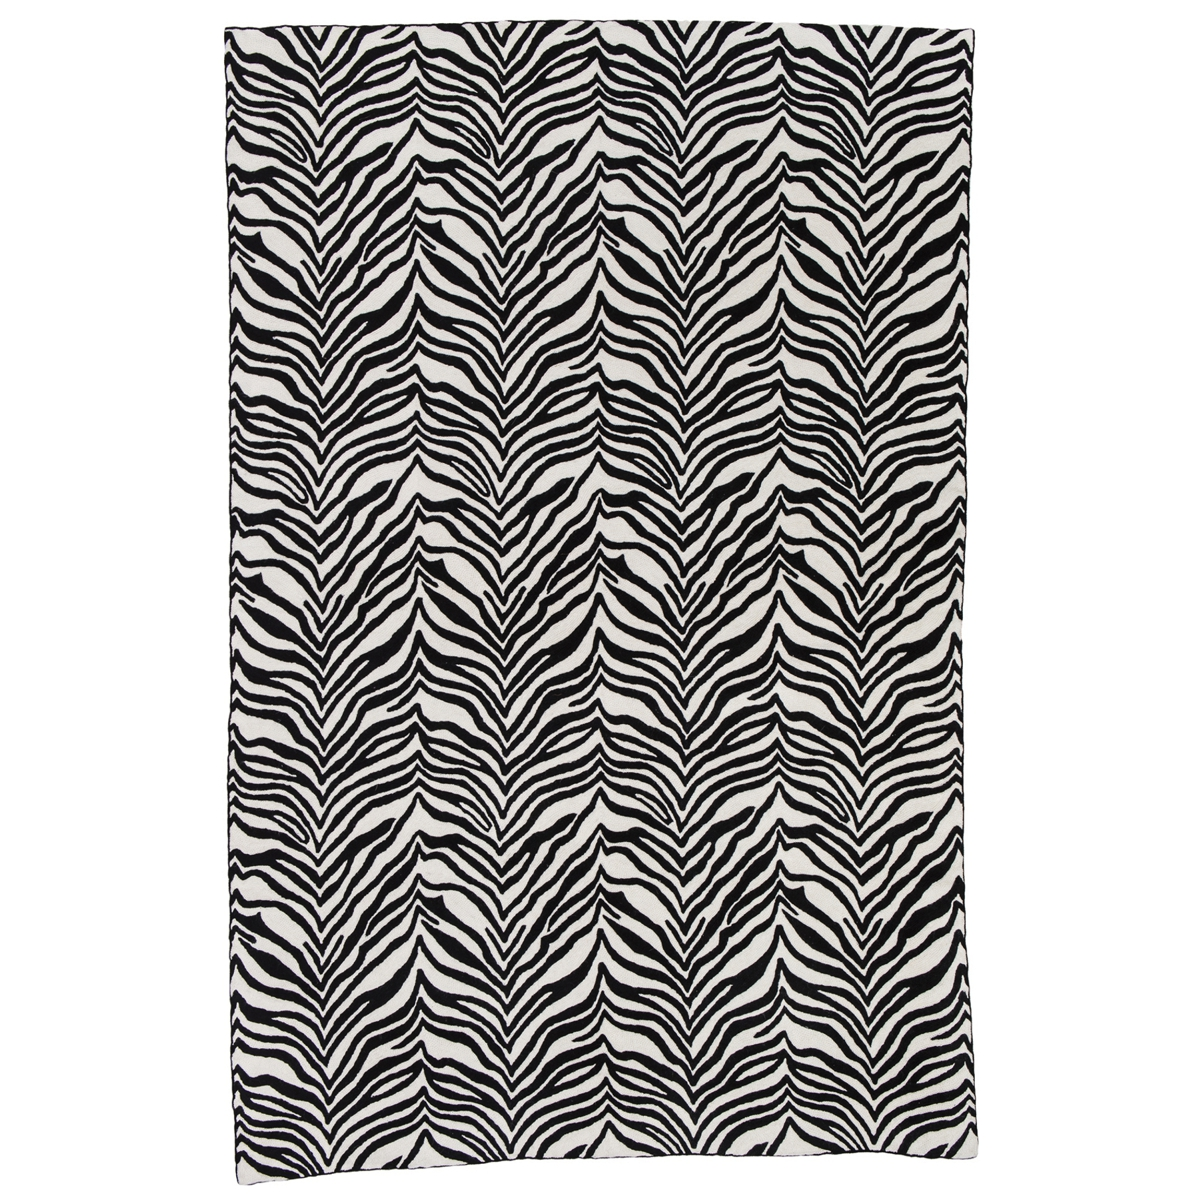 Zaida Black and White Zebra Rug 180cm x 120cm (6ft x 4ft)